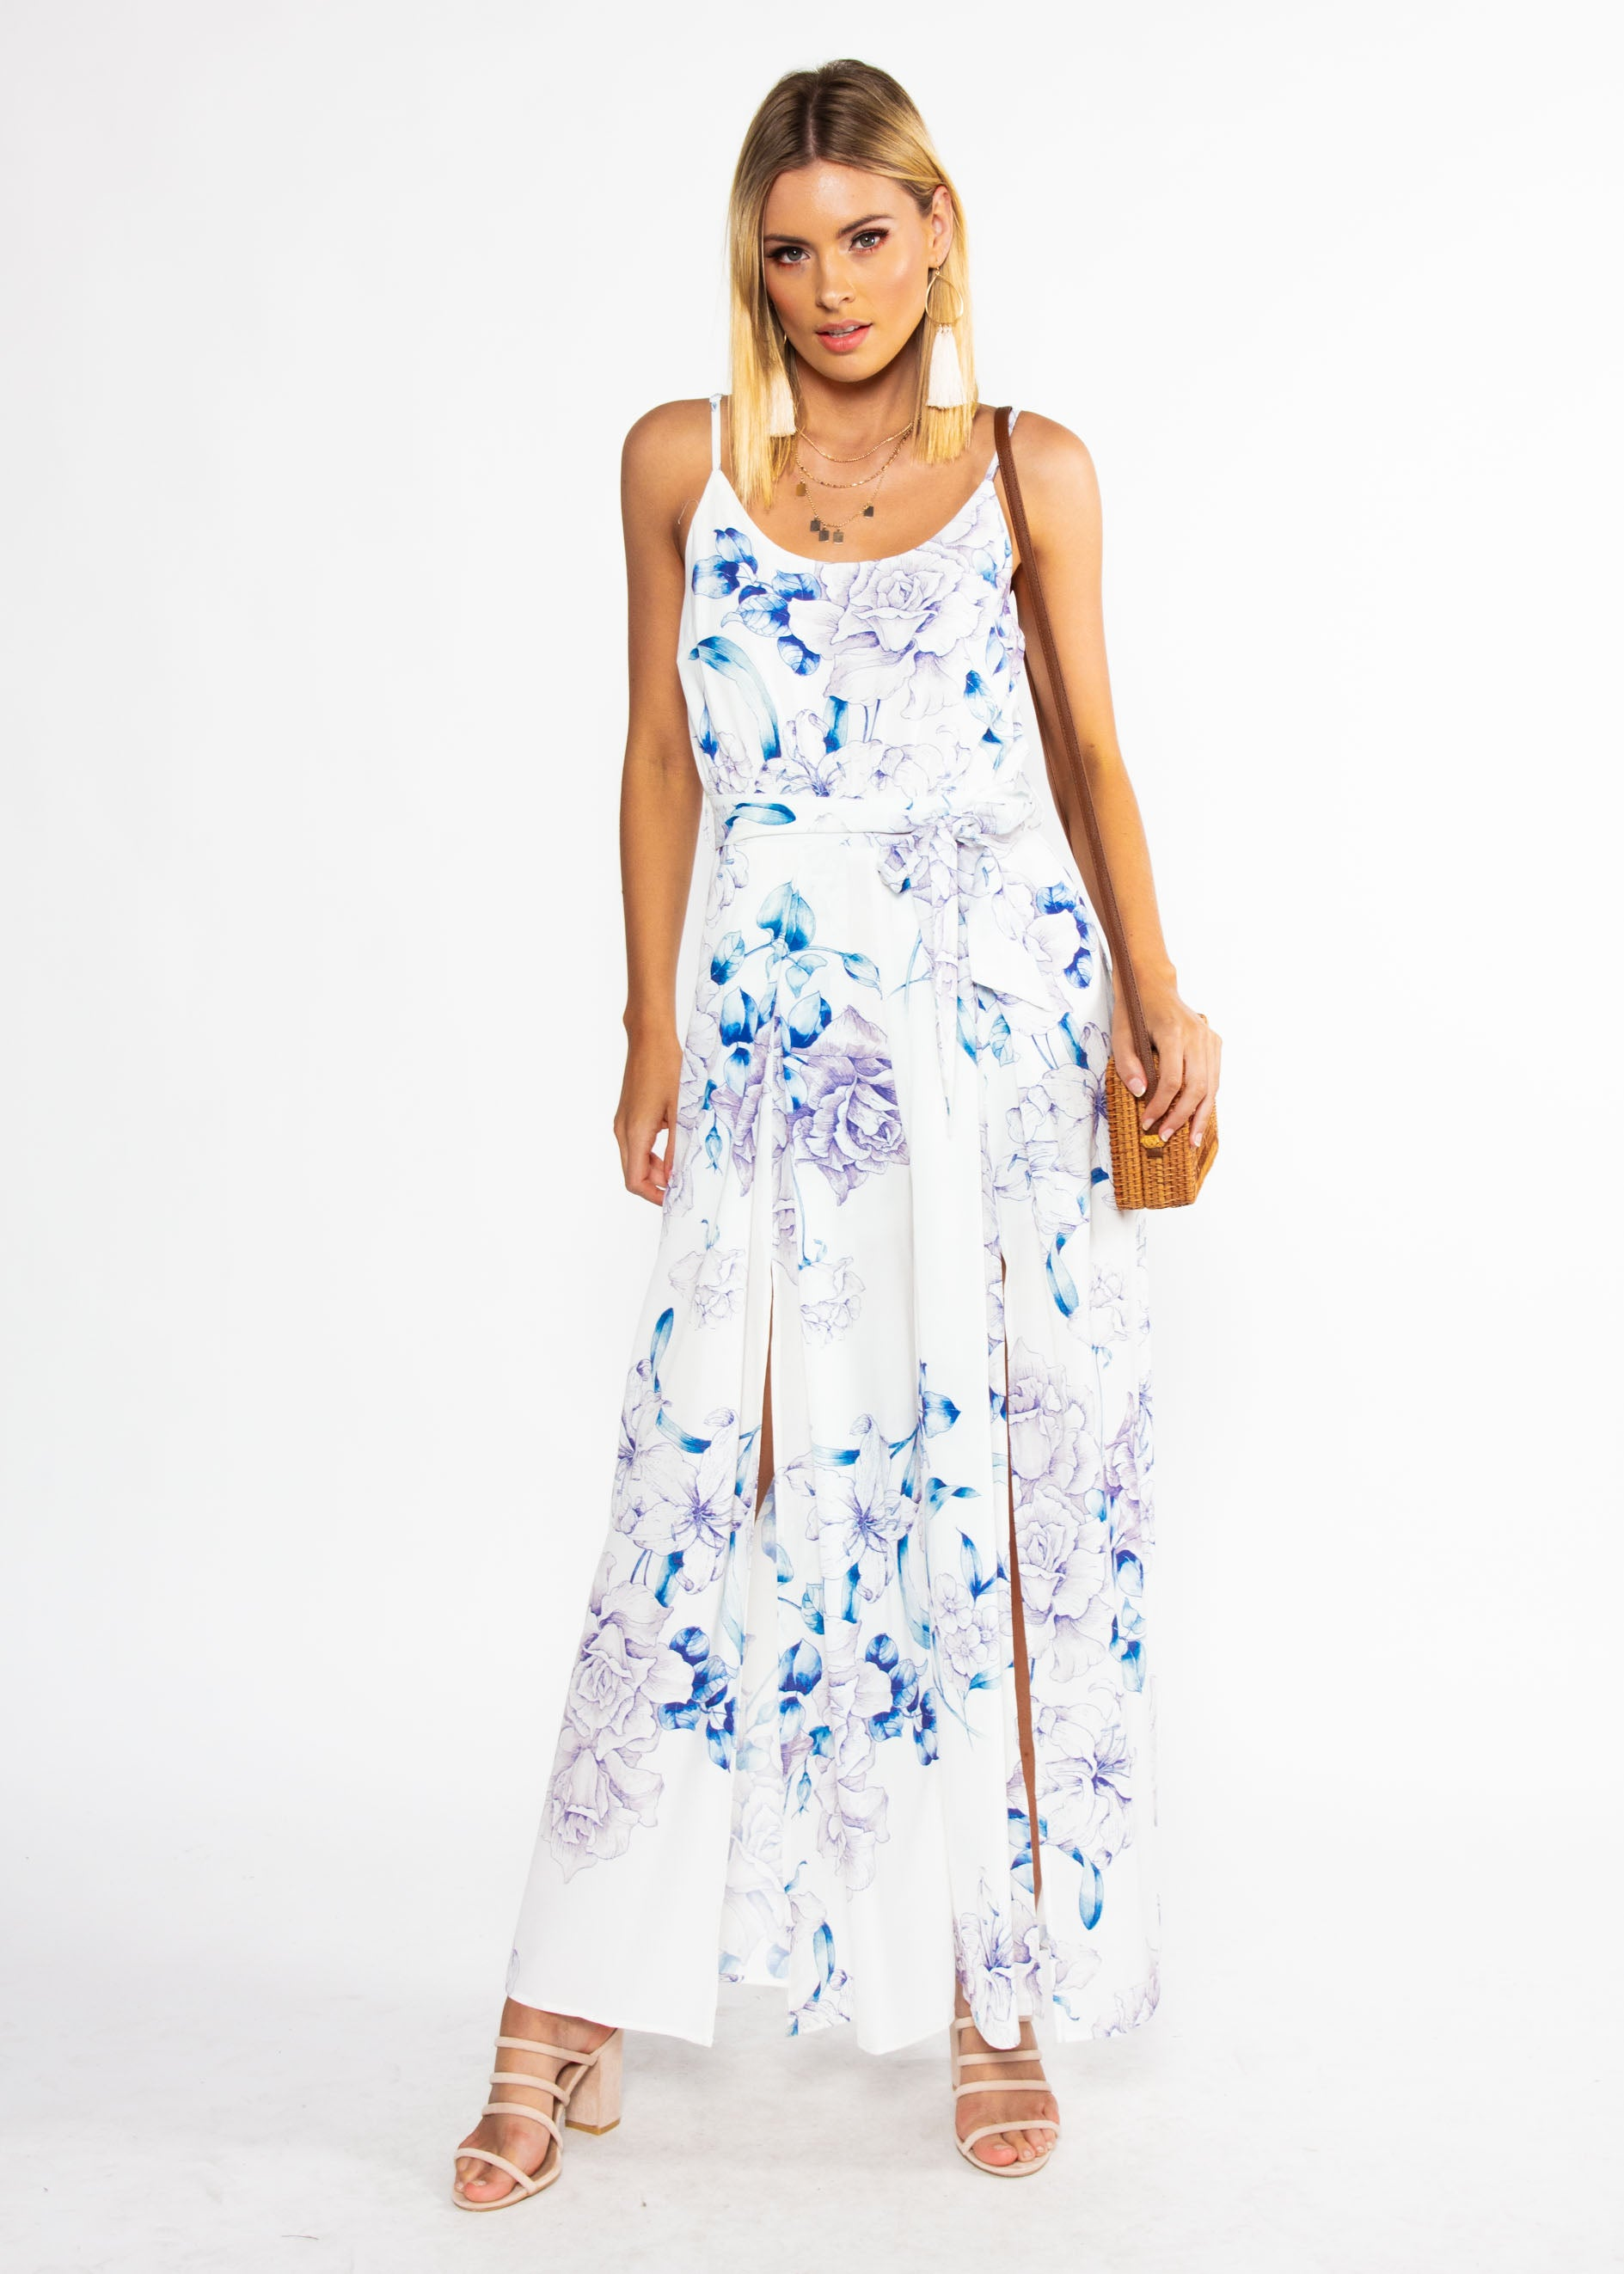 Electric Feeling Pantsuit w/ Tie - White Floral